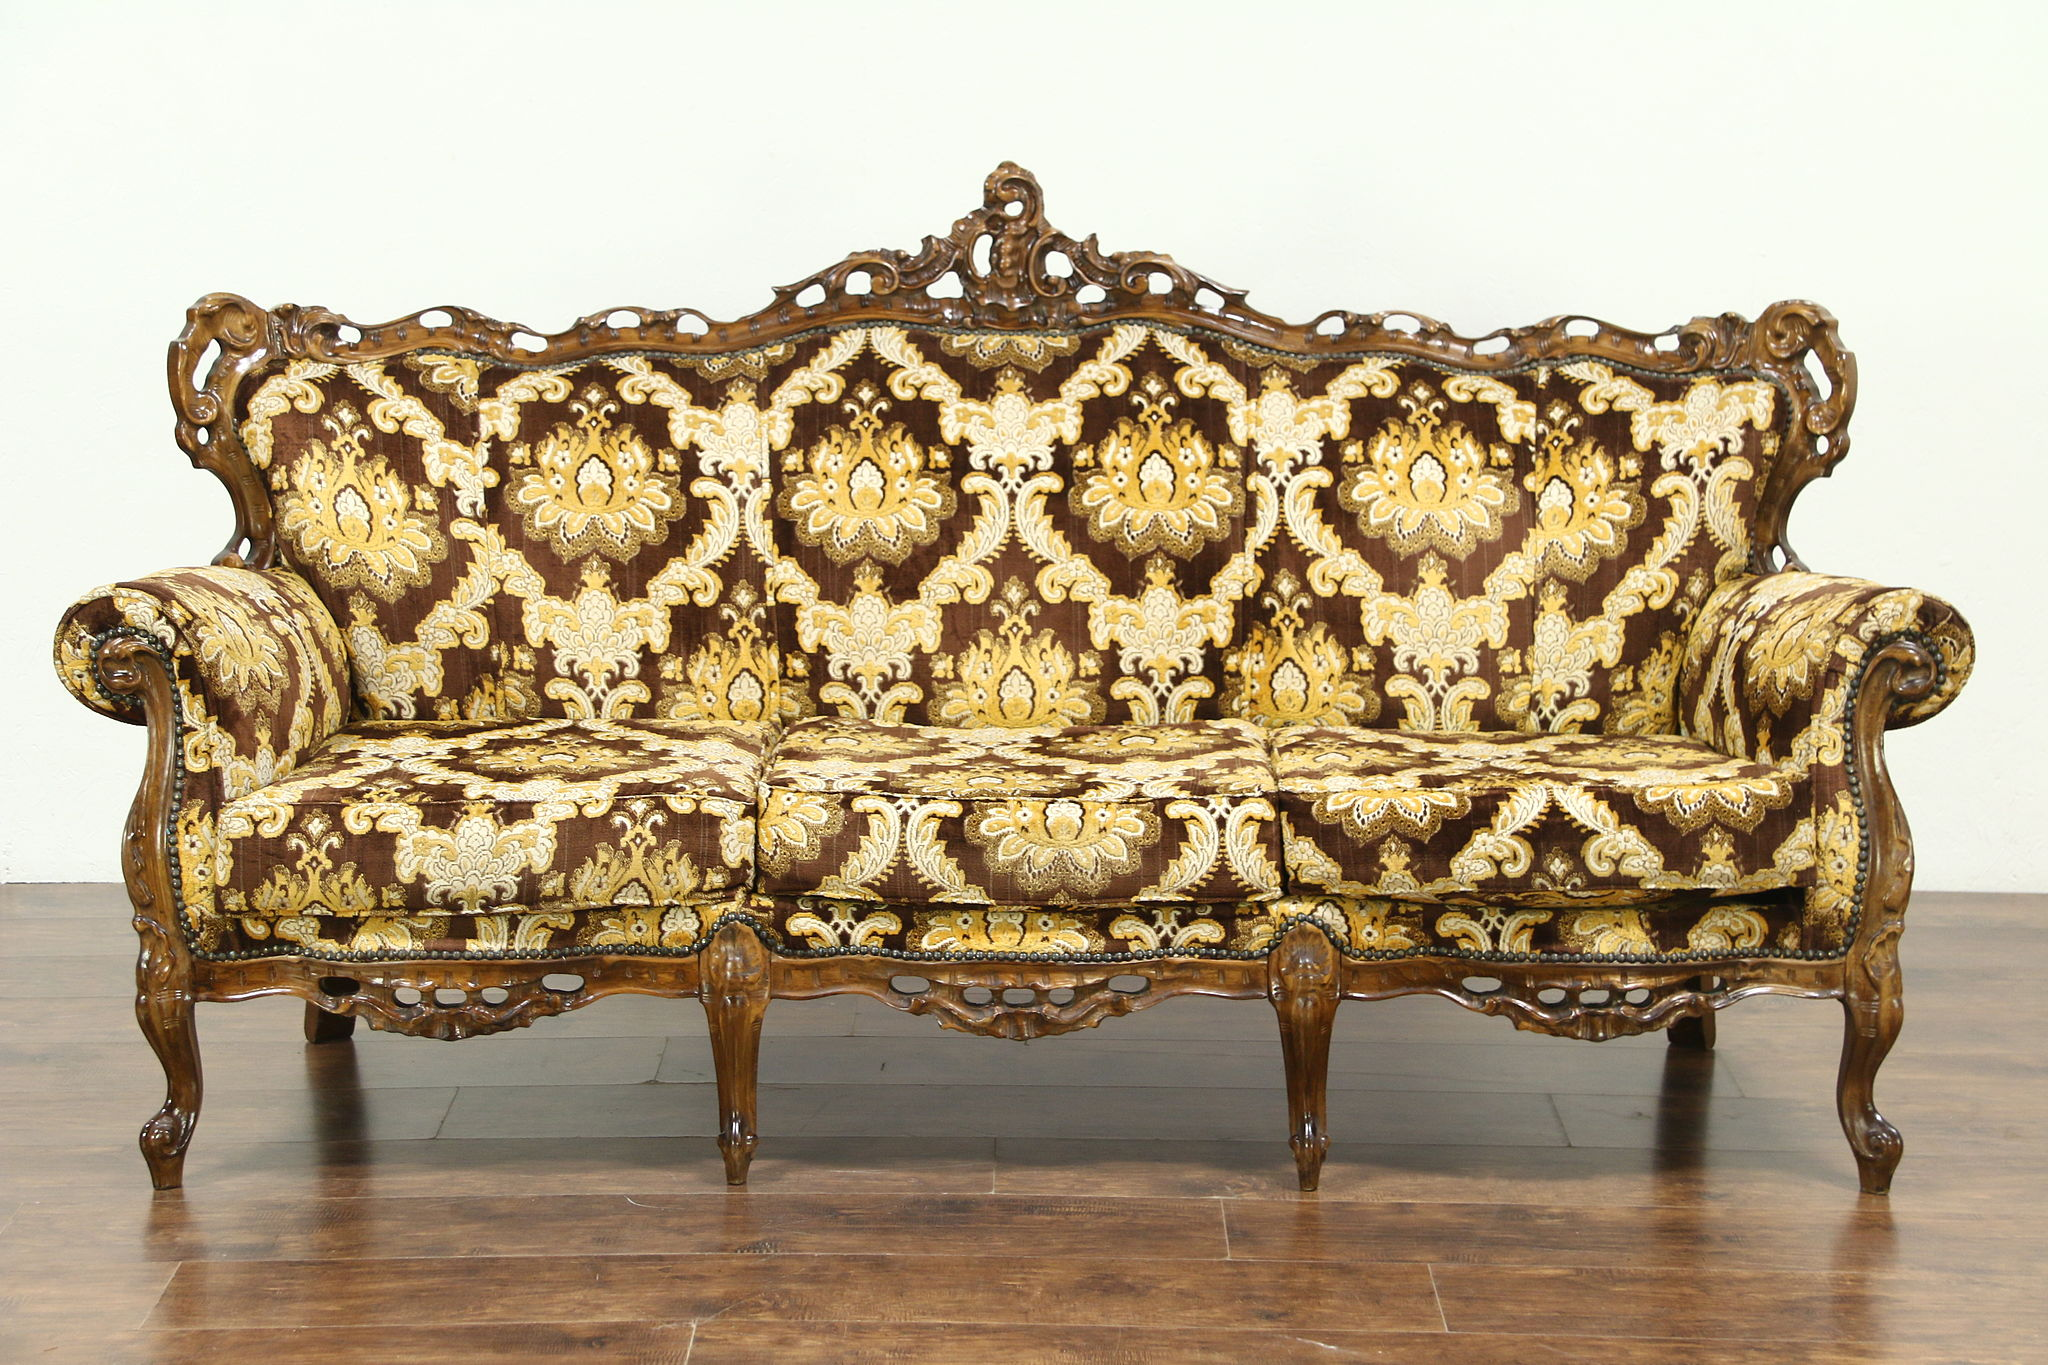 Big Sofa Vintage Look Baroque Style Sofa Luxury French Baroque Style Clic